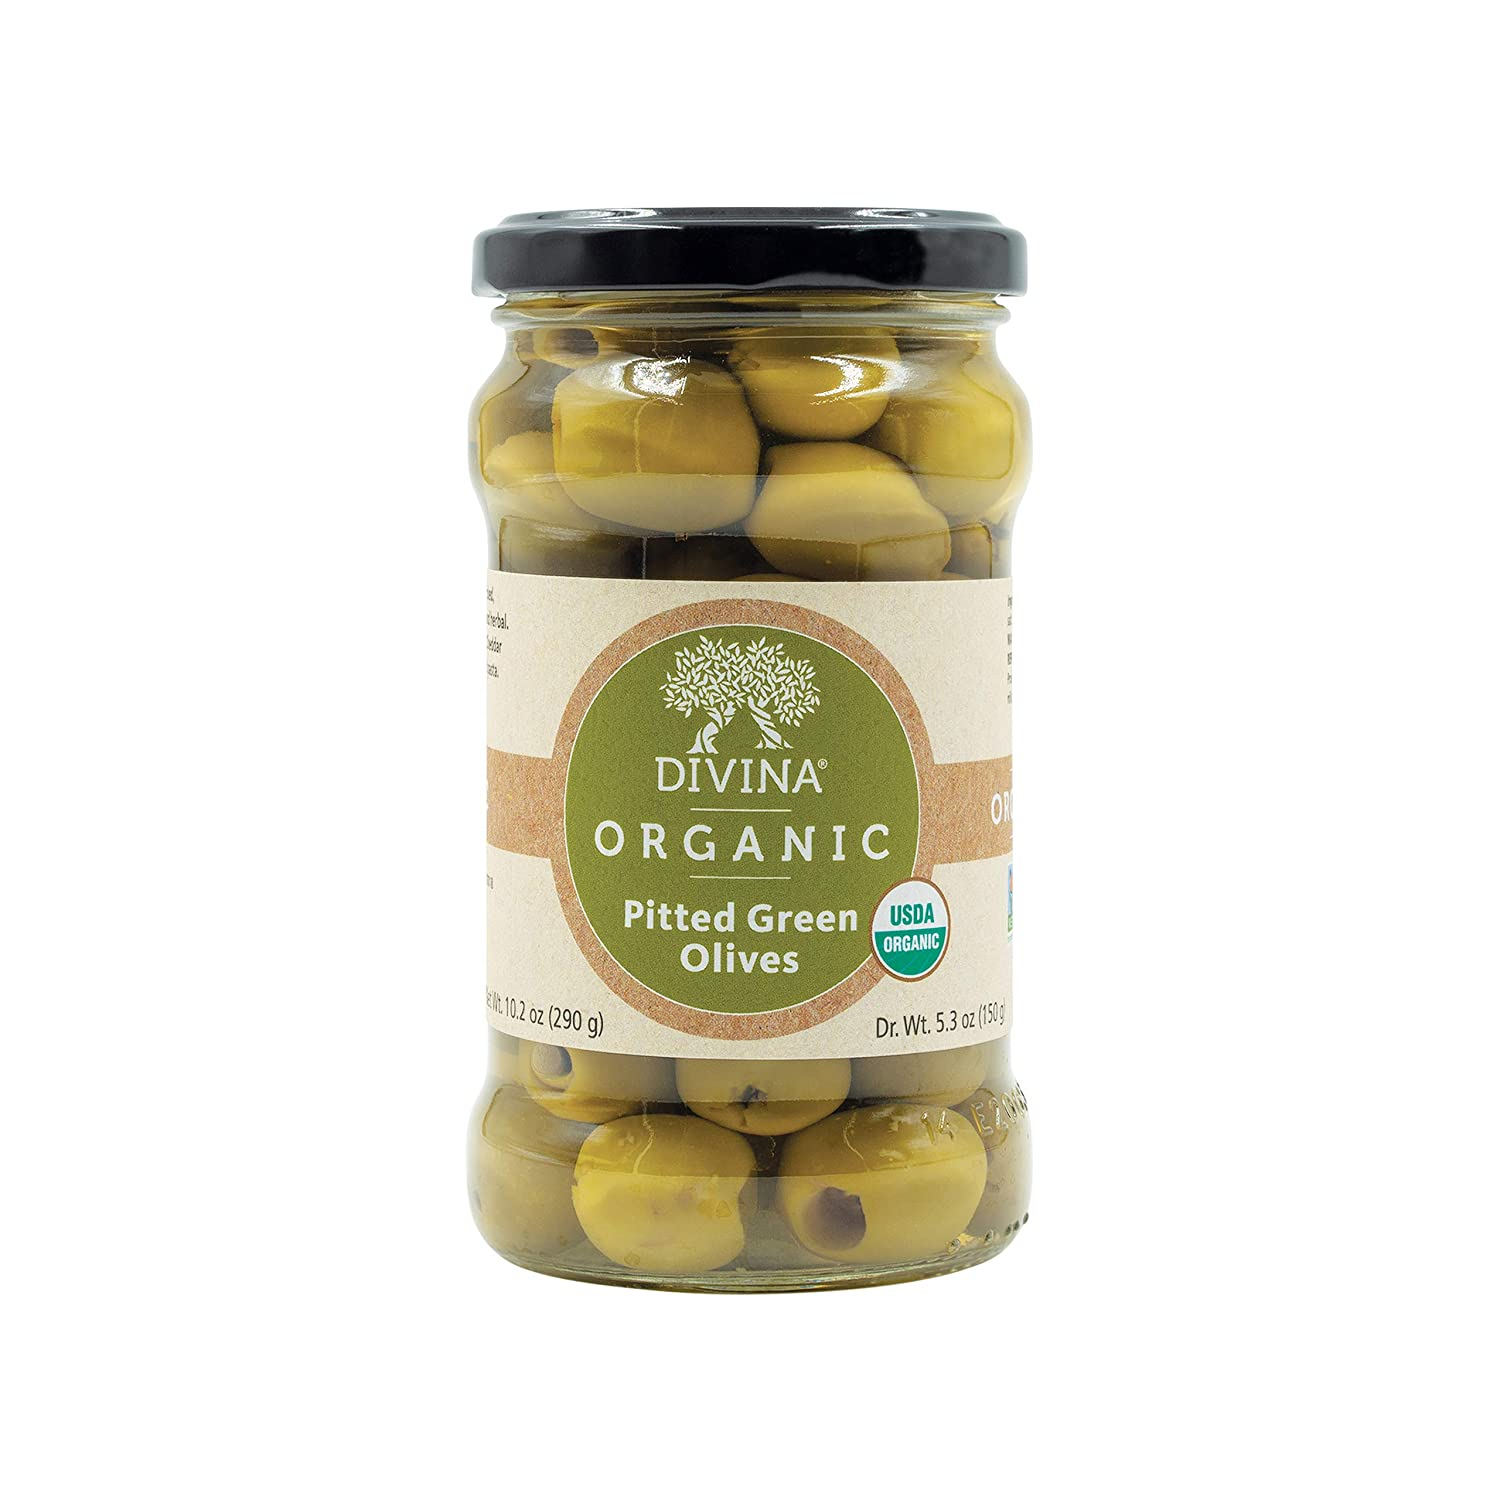 Divina Organic Pitted Green Olives, 10.2 Ounce Net Weight